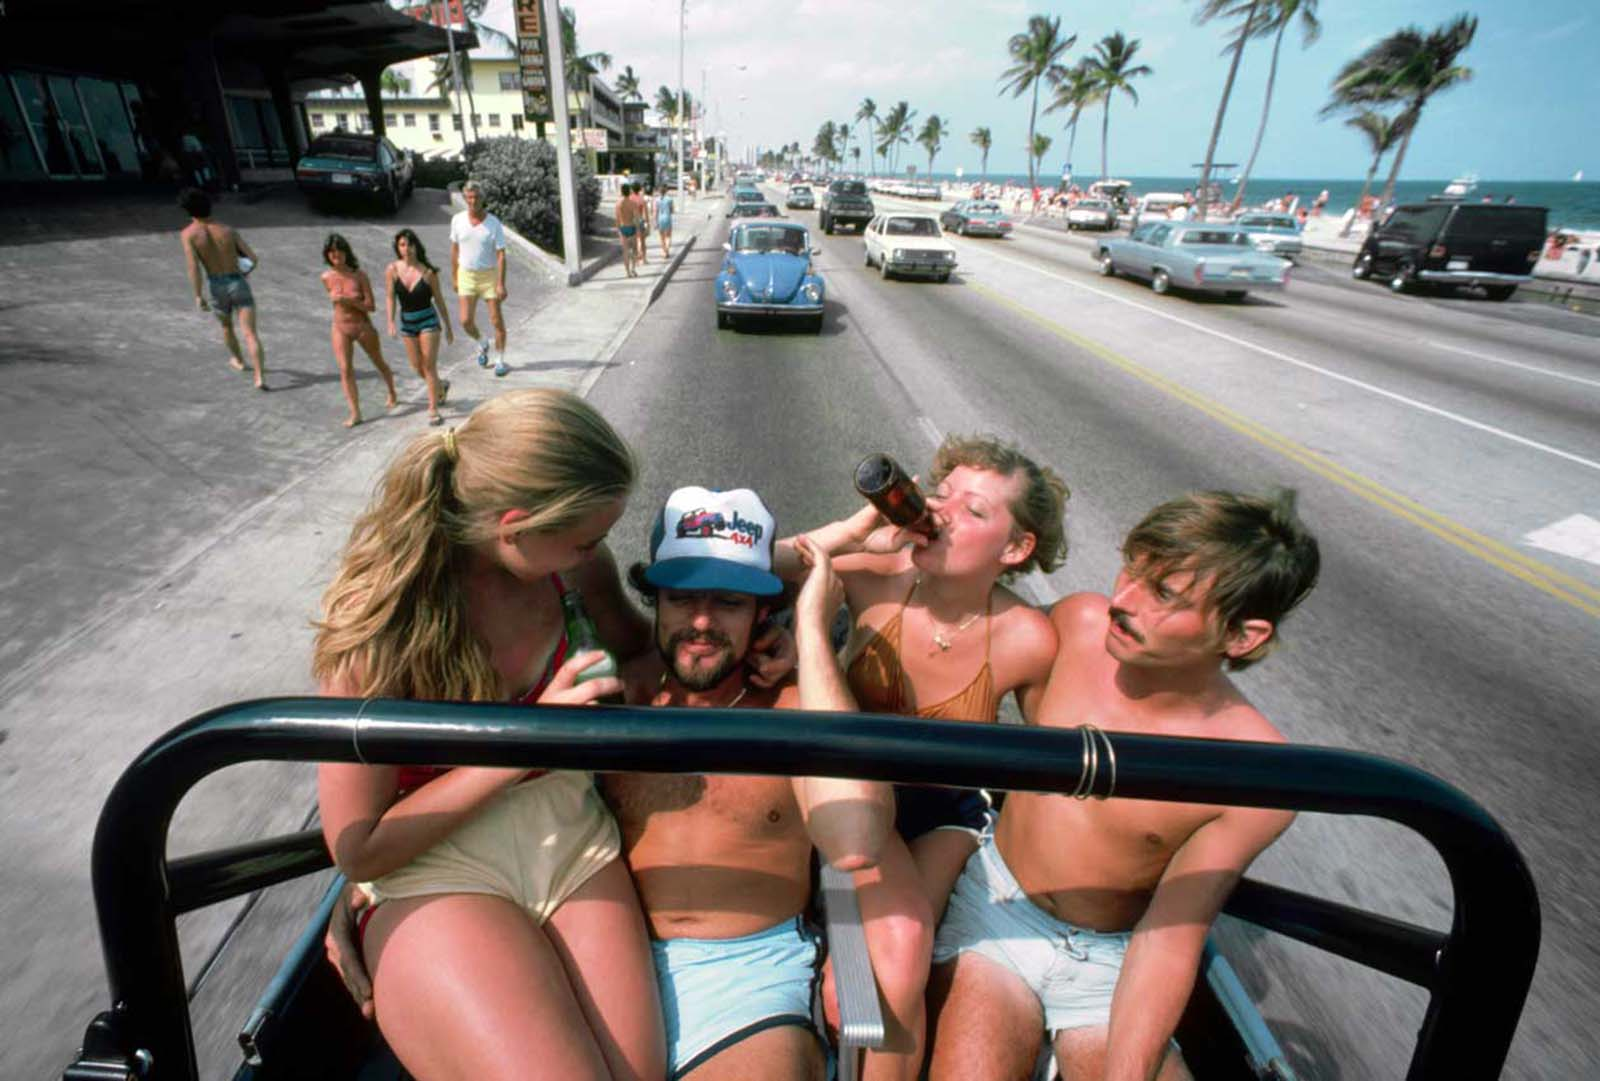 Cruising the streets of Fort Lauderdale. 1982.